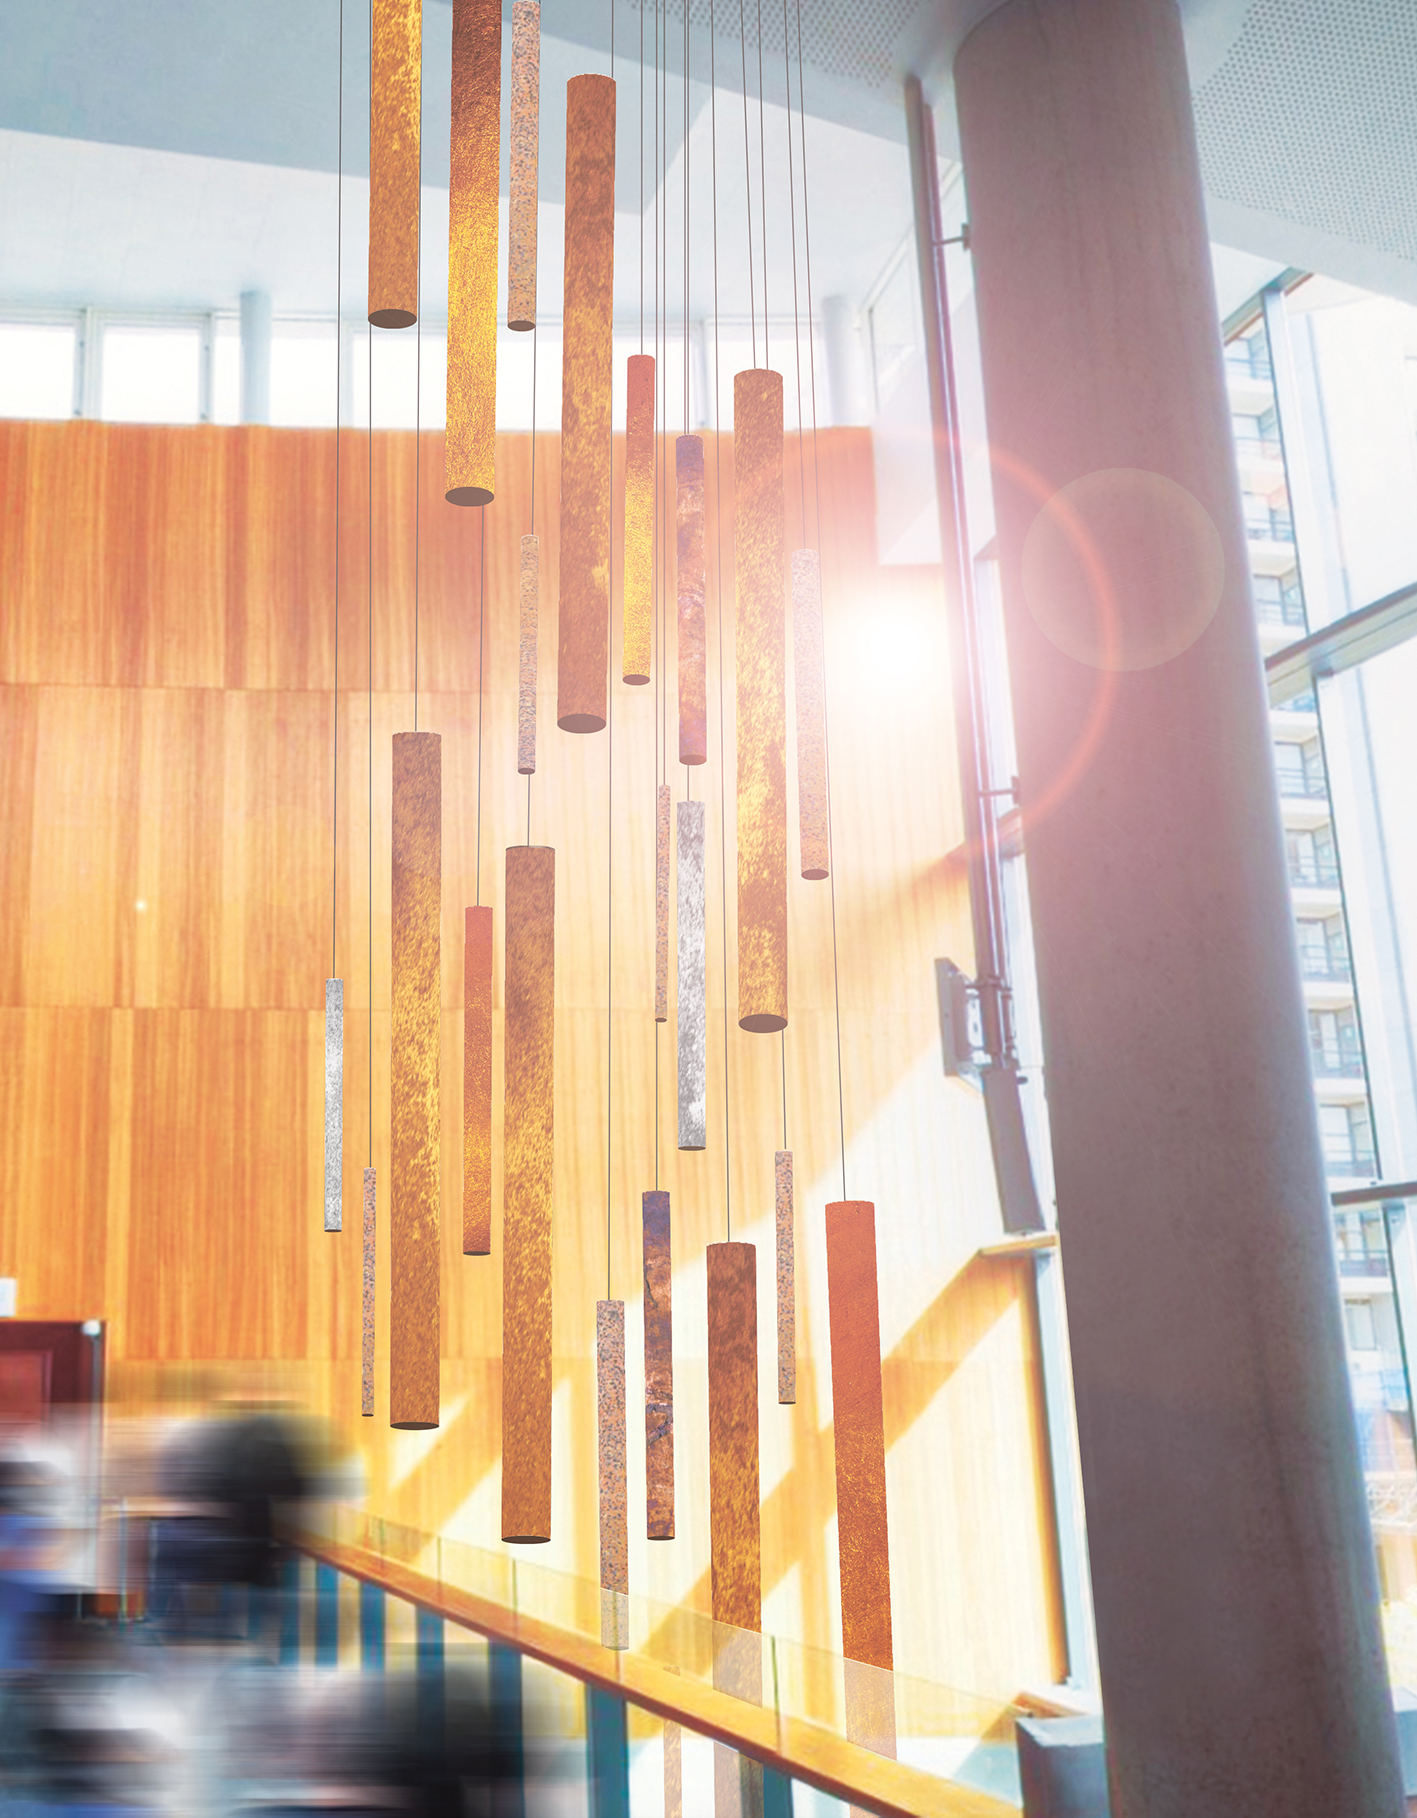 Artist impression of CHIME sculpture showing long cylinders of metal suspended from the ceiling of a sun-lit open space